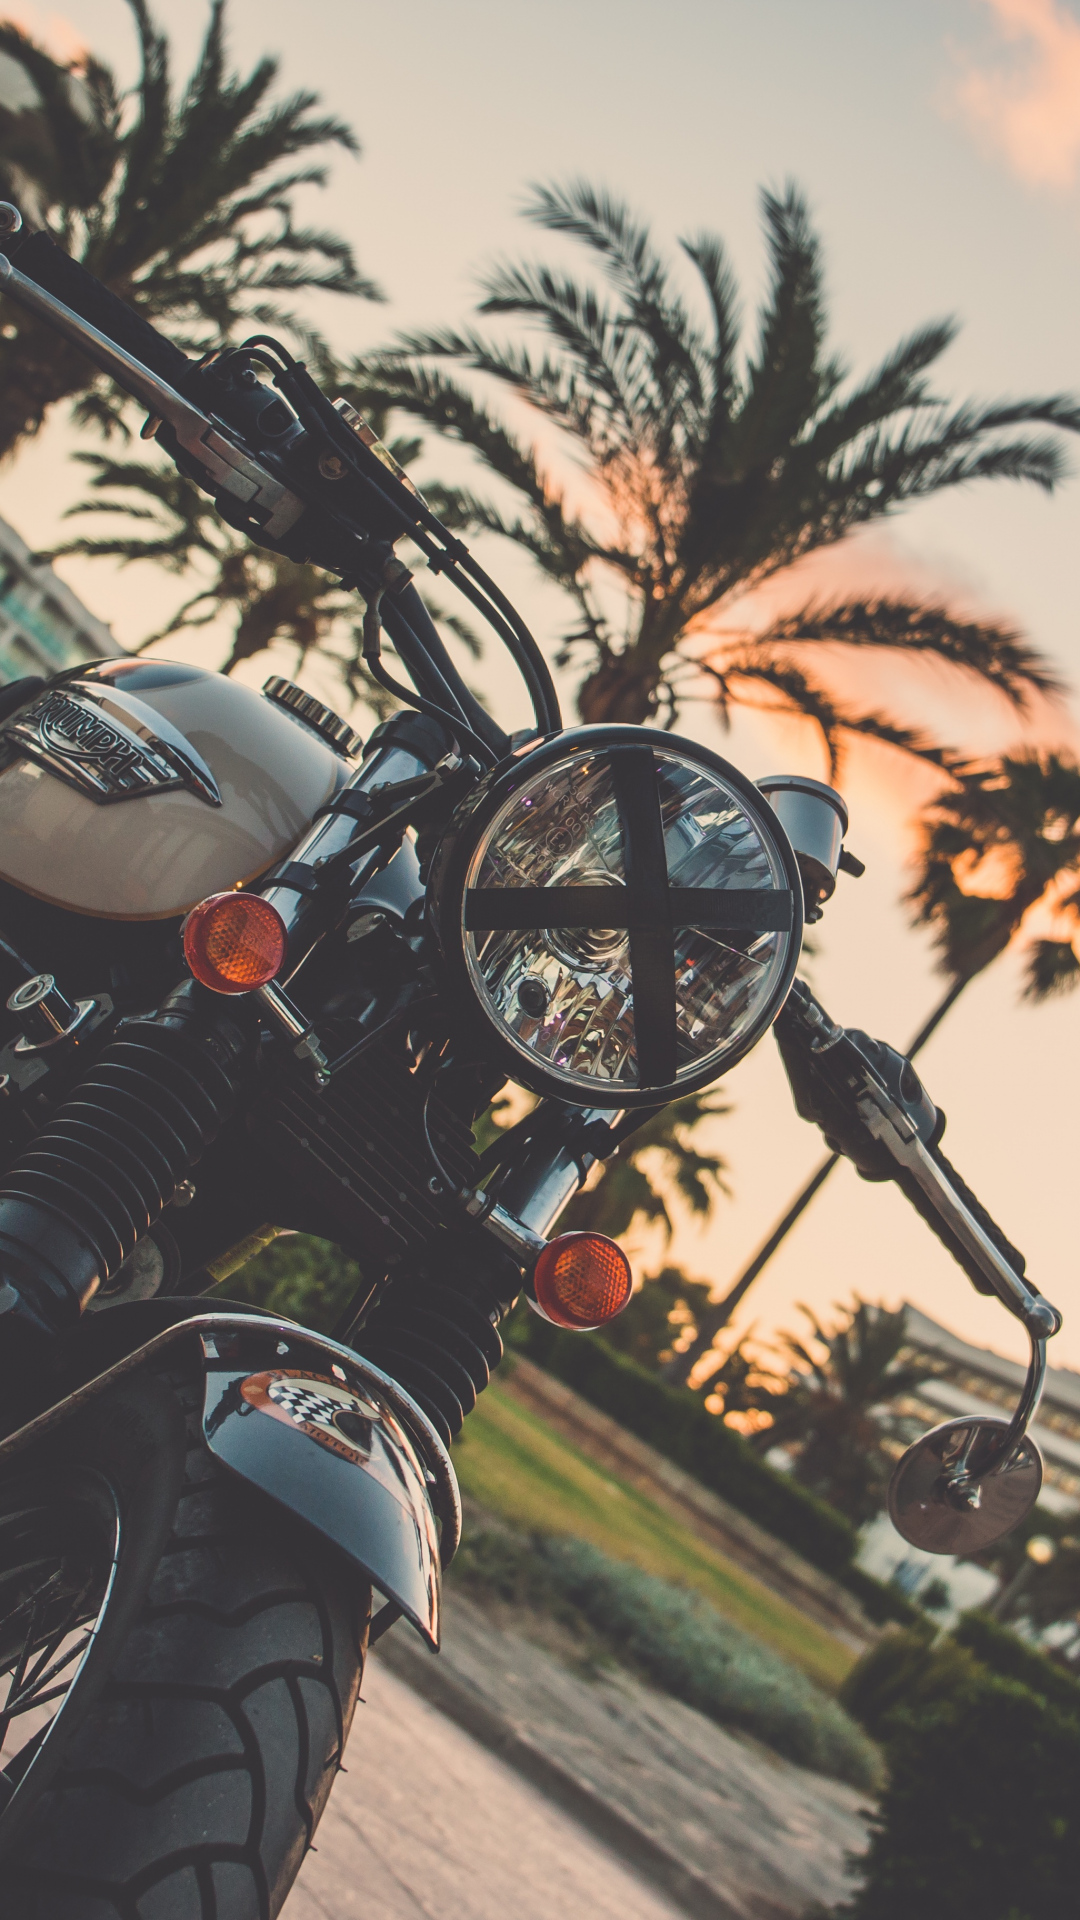 iphone wallpaper motorcycle bike palm tree Motorbike